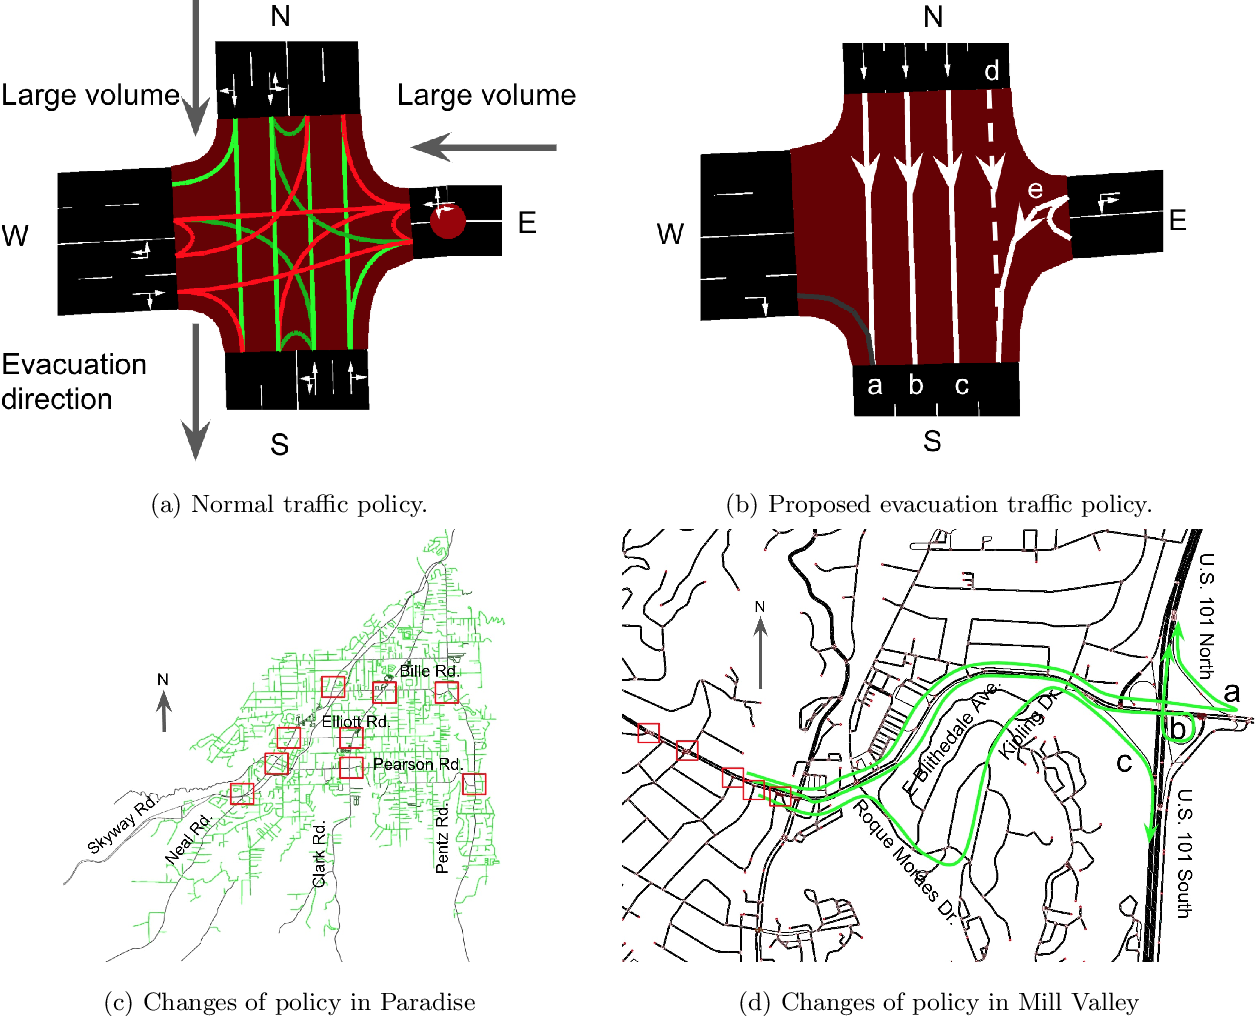 Figure 4 for Simulation Pipeline for Traffic Evacuation in Urban Areas and Emergency Traffic Management Policy Improvements